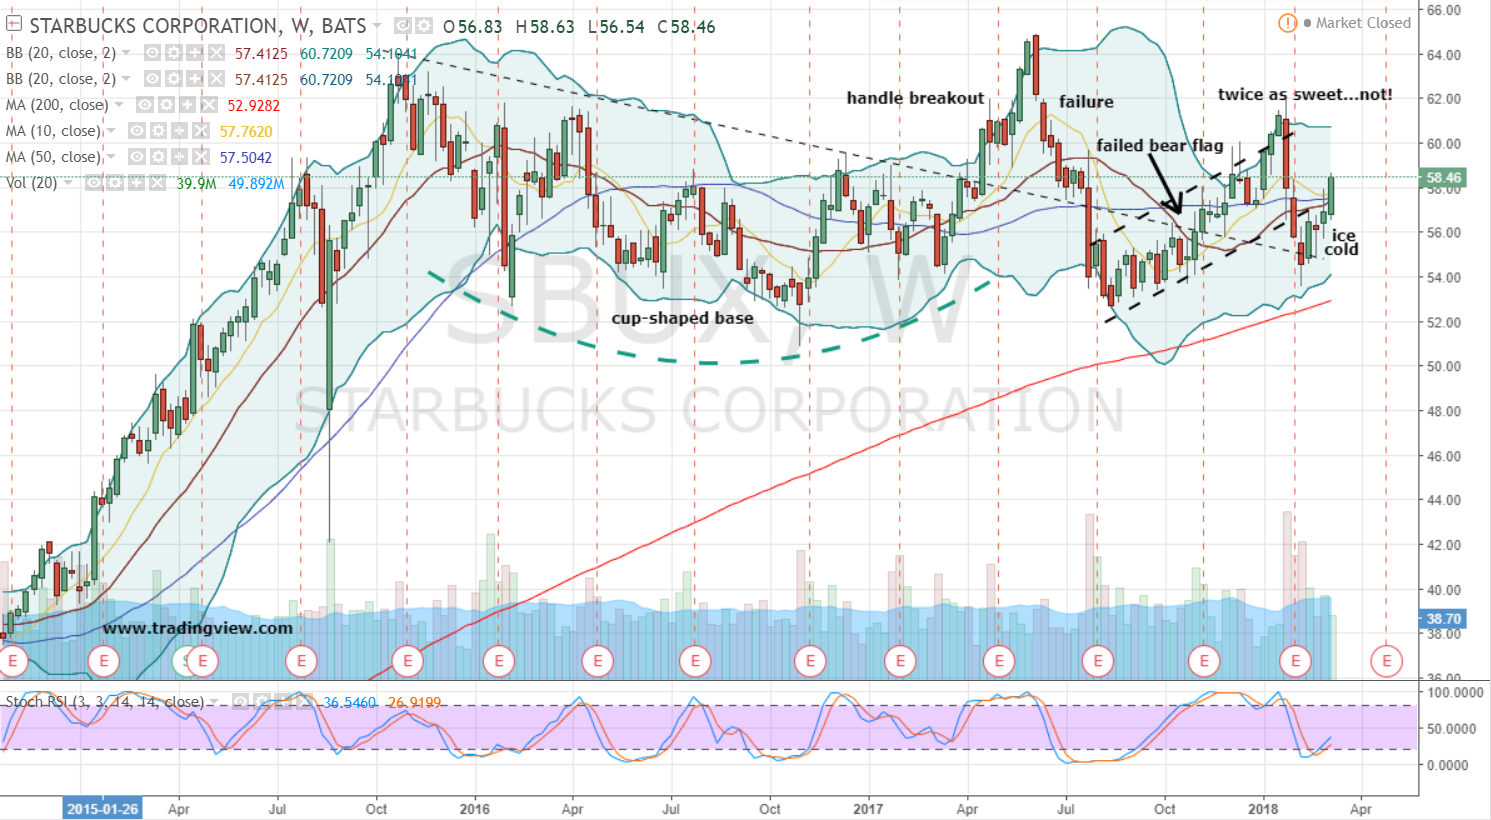 Goodwin Daniel L Purchases Shares of 3500 Starbucks Co. (SBUX)